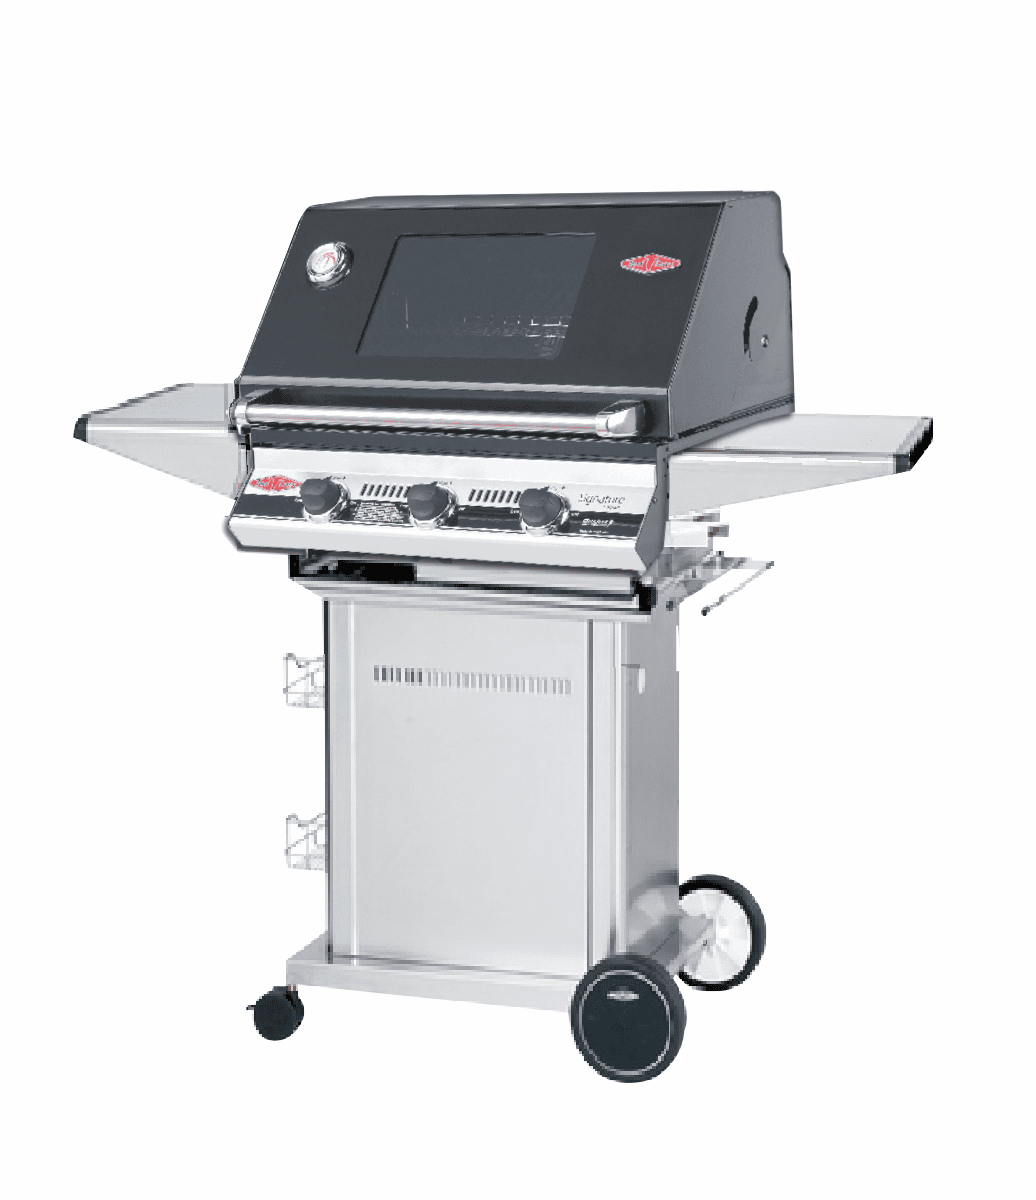 Beefeater 19832 3 burner Signature with 22130 S/S Pedestal package